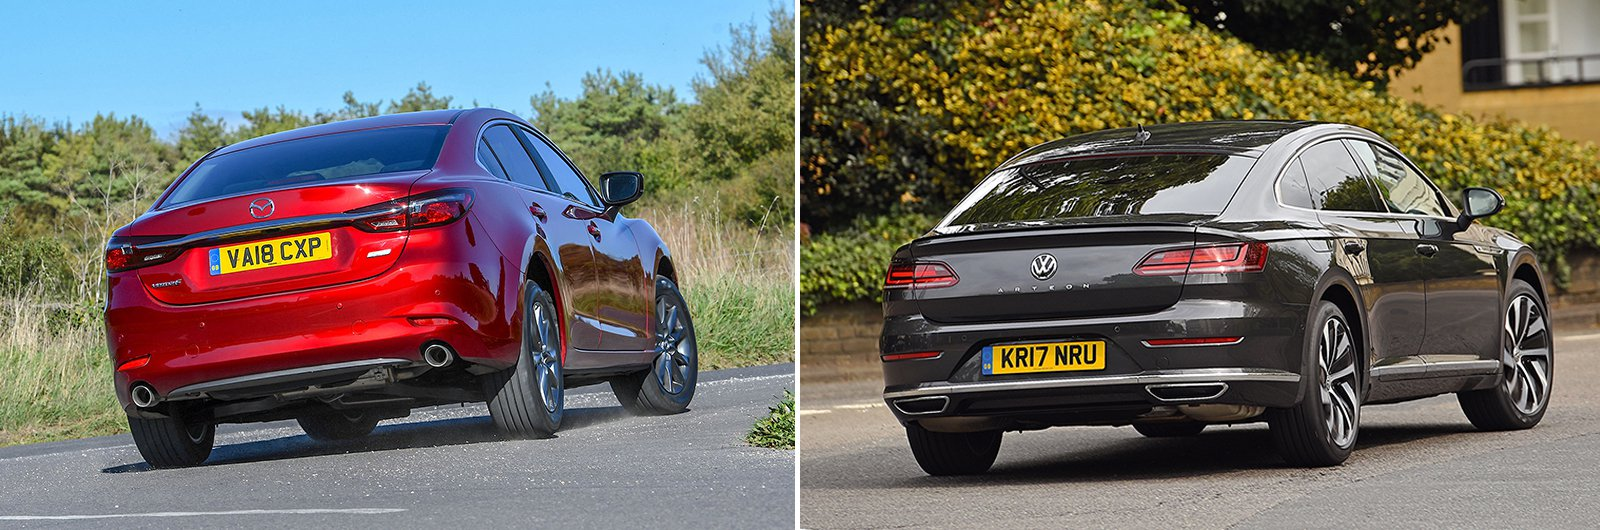 New Mazda 6 vs used Volkswagen Arteon: which is best?